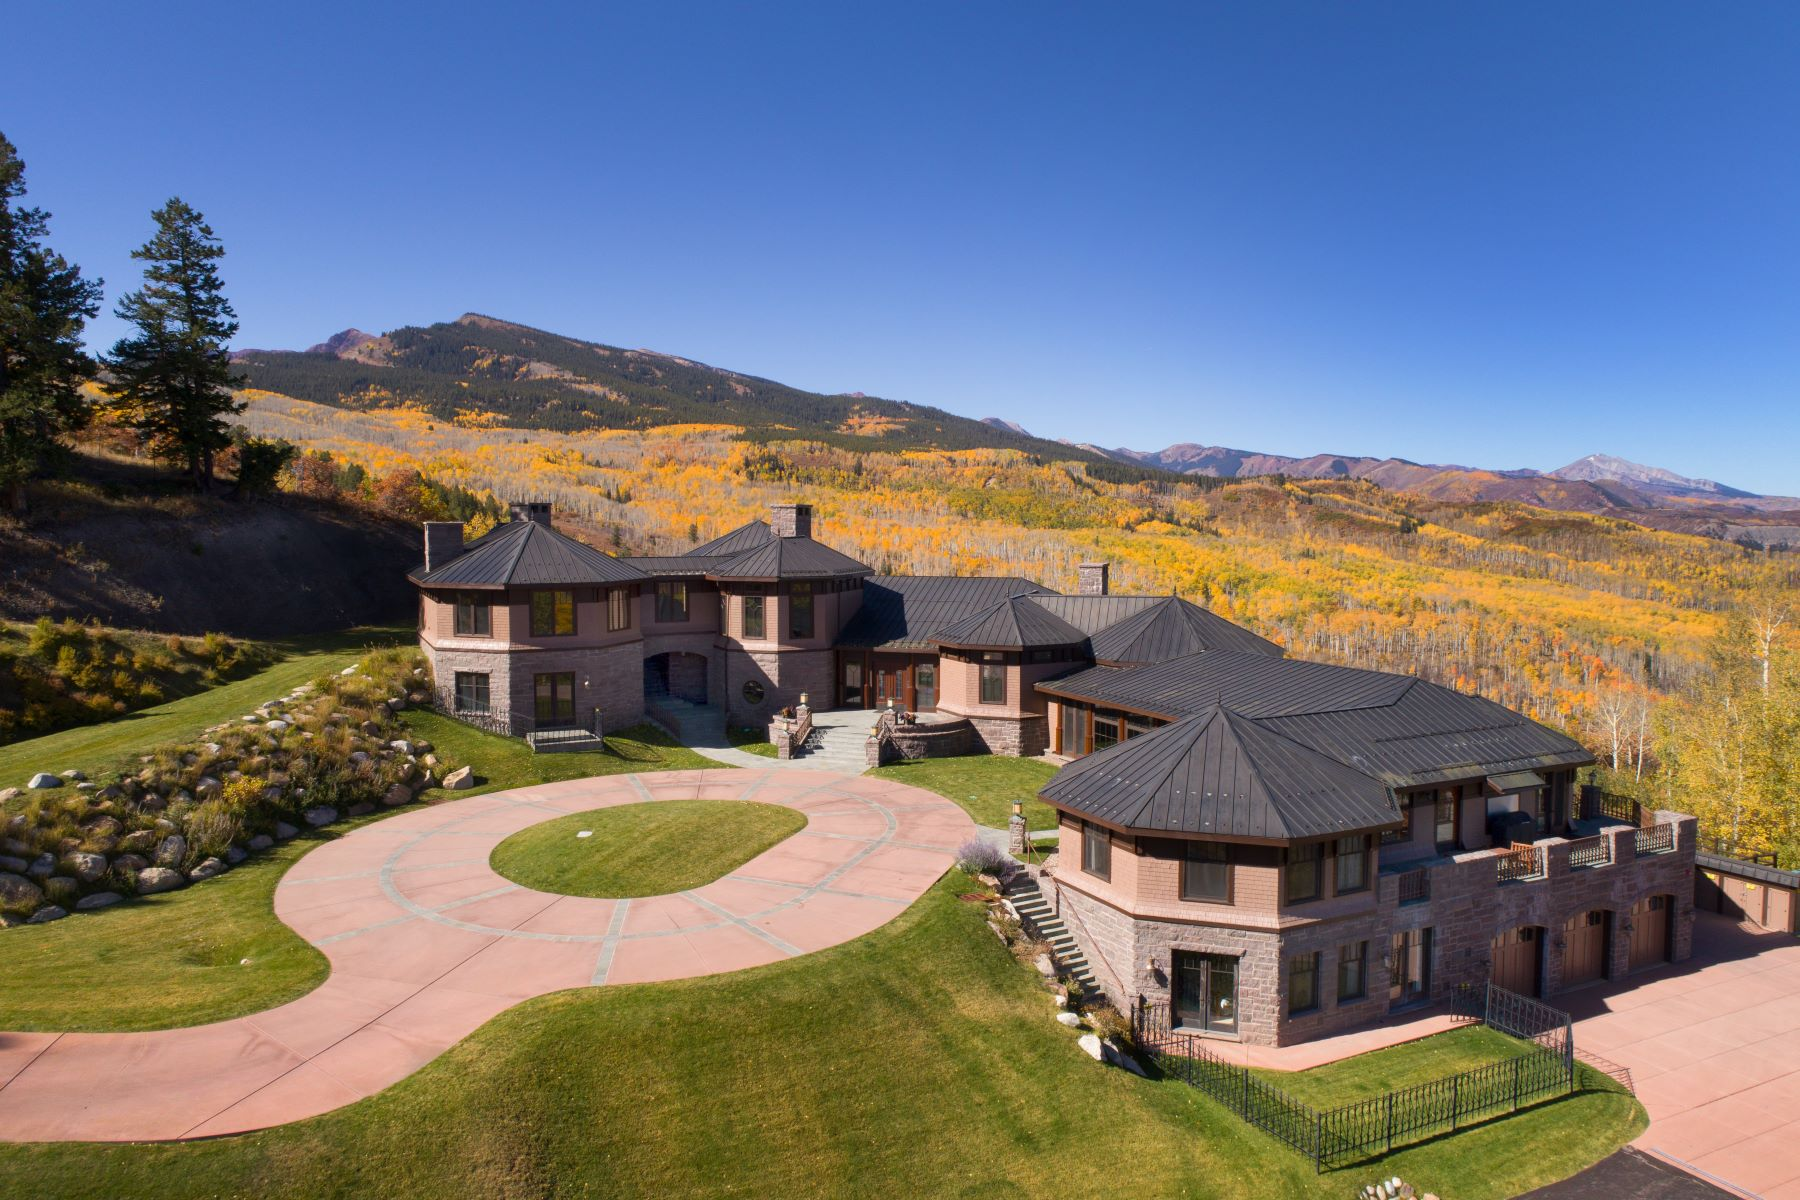 Single Family Homes for Sale at Owl Mountain Ranch 2900 West Buttermilk Road, Aspen, Colorado 81611 United States